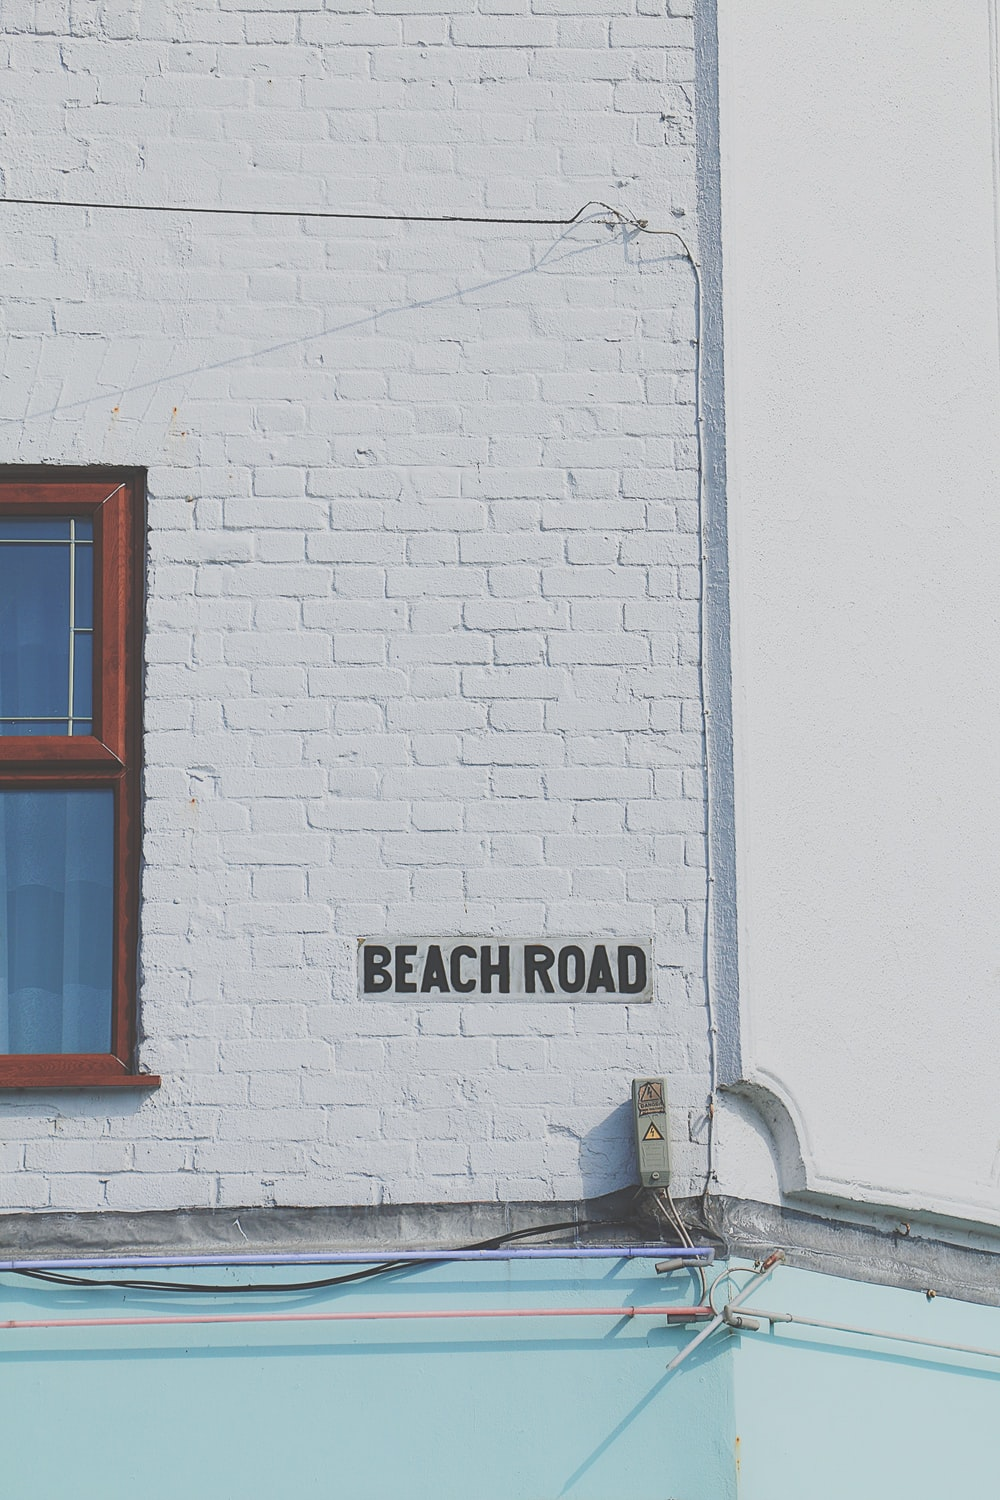 Beach Road signage at daytime